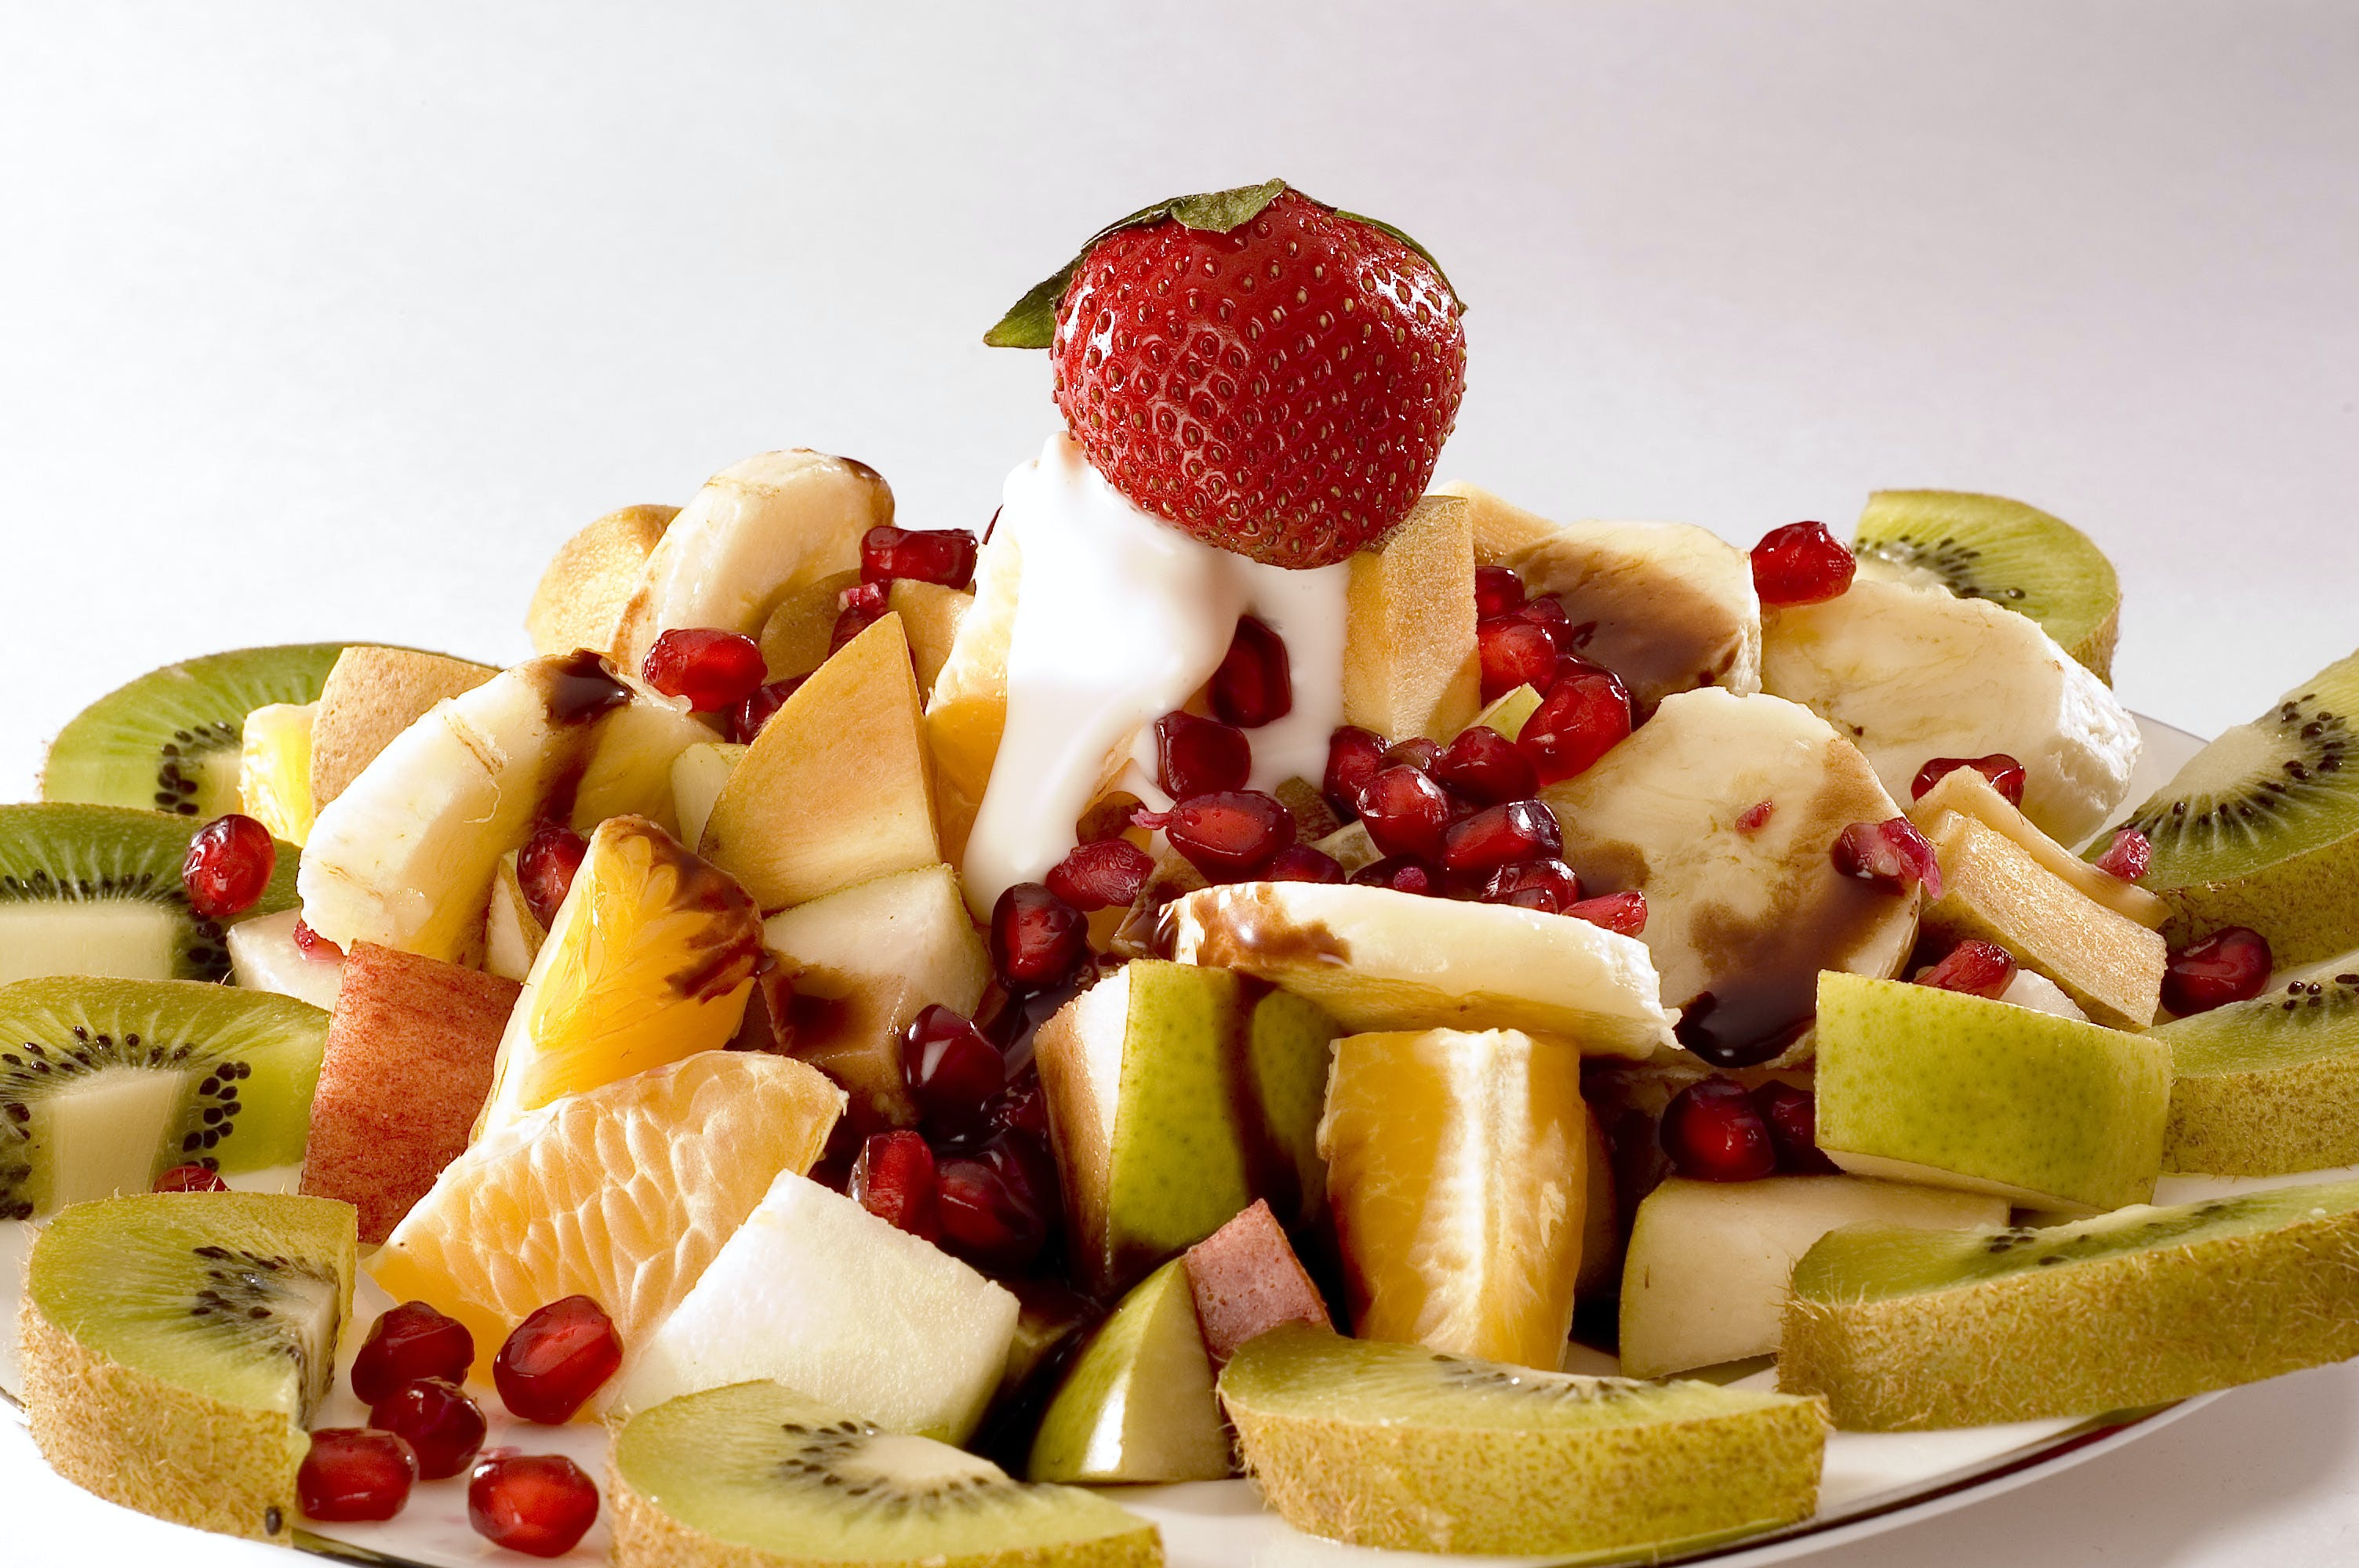 Strawberry With Sliced Kiwis and Fruits